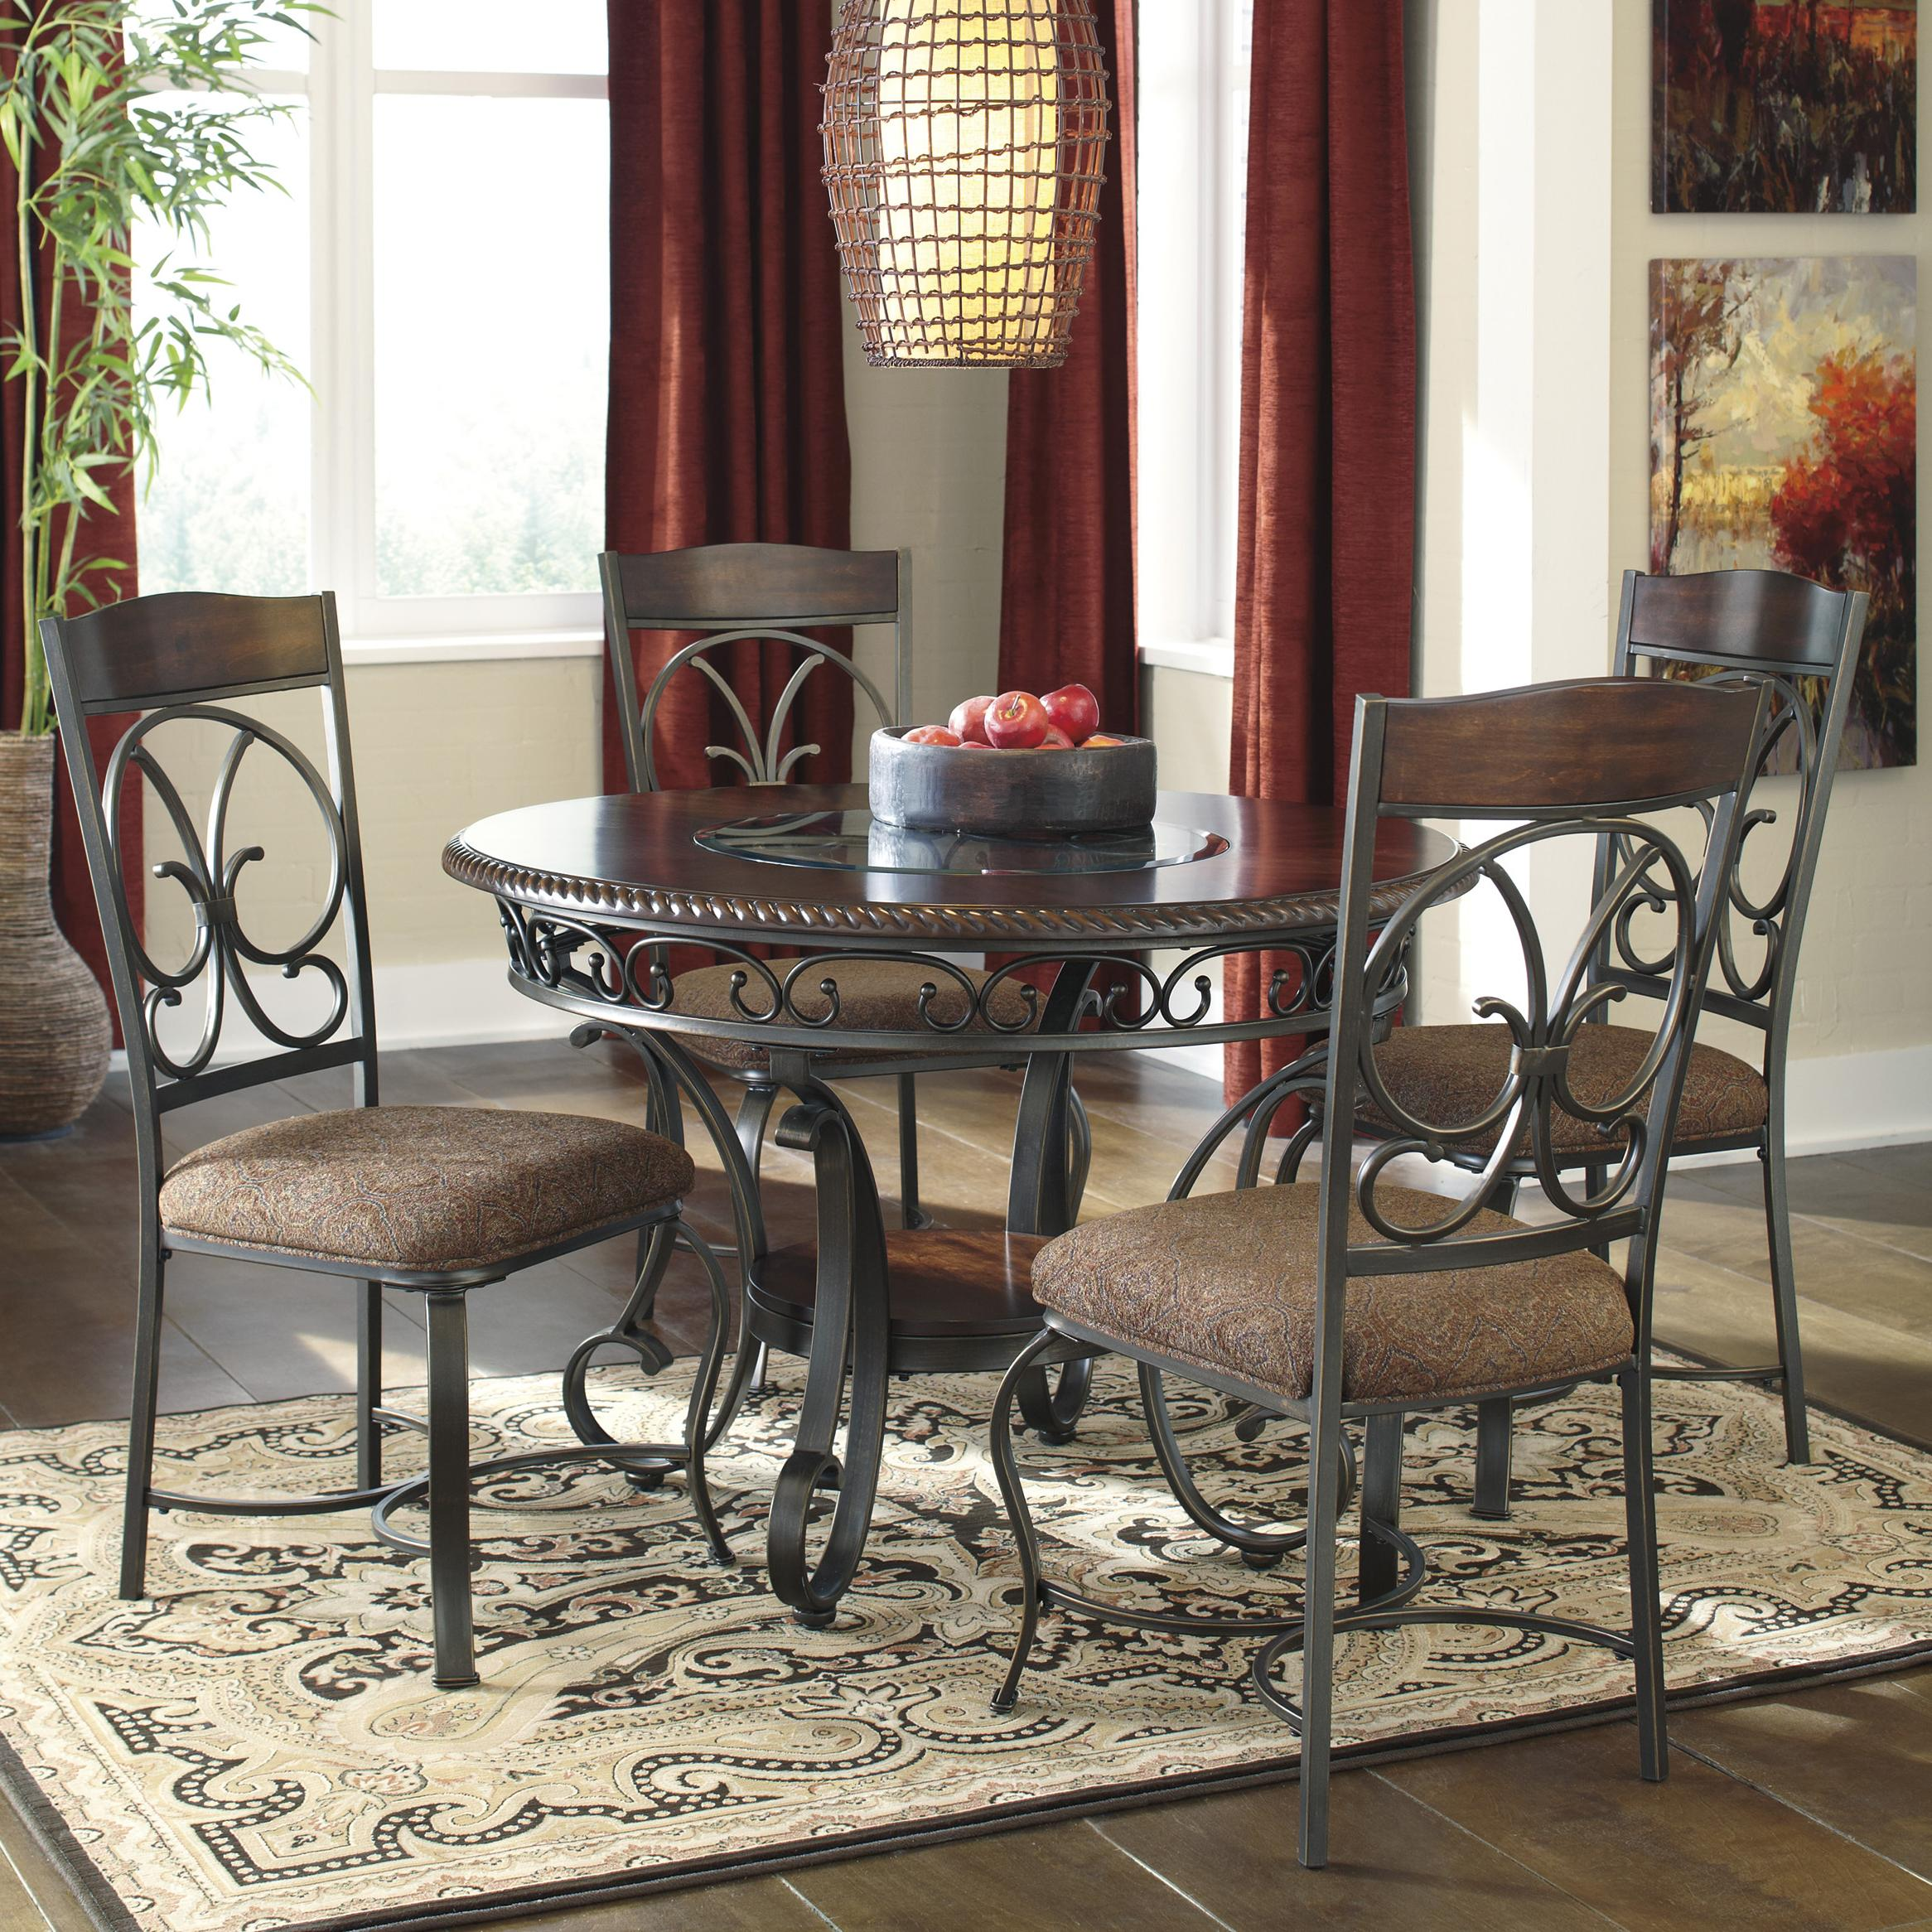 Signature Design by Ashley Glambrey Round Dining Table and Chair Set - Item Number D329 & Signature Design by Ashley Glambrey Round Dining Table and 4 Chair ...